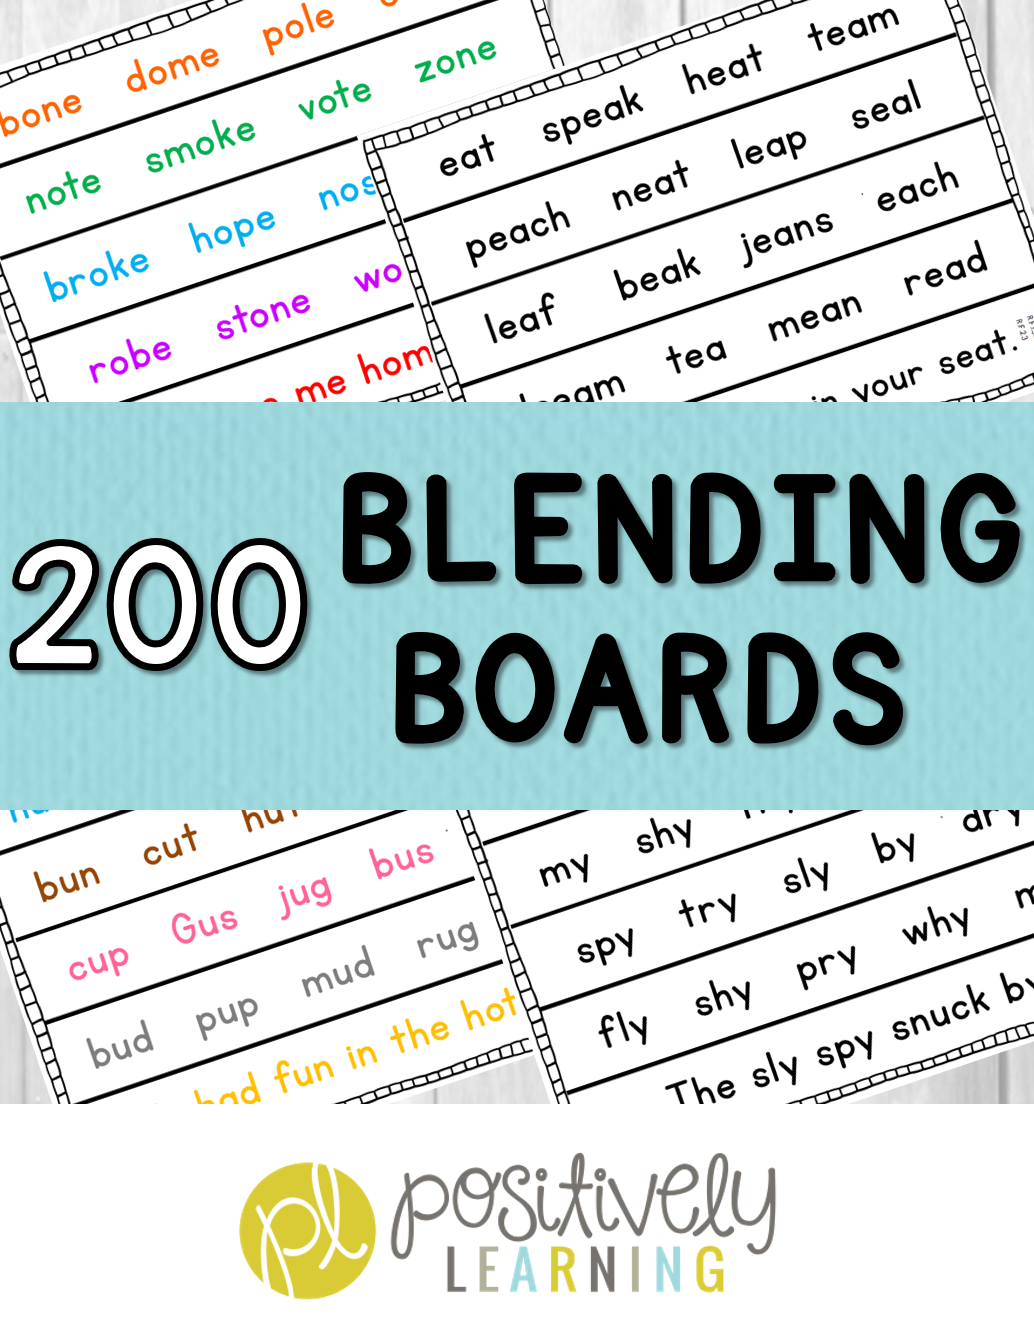 Blending Boards for Phonics Fluency - Positively Learning